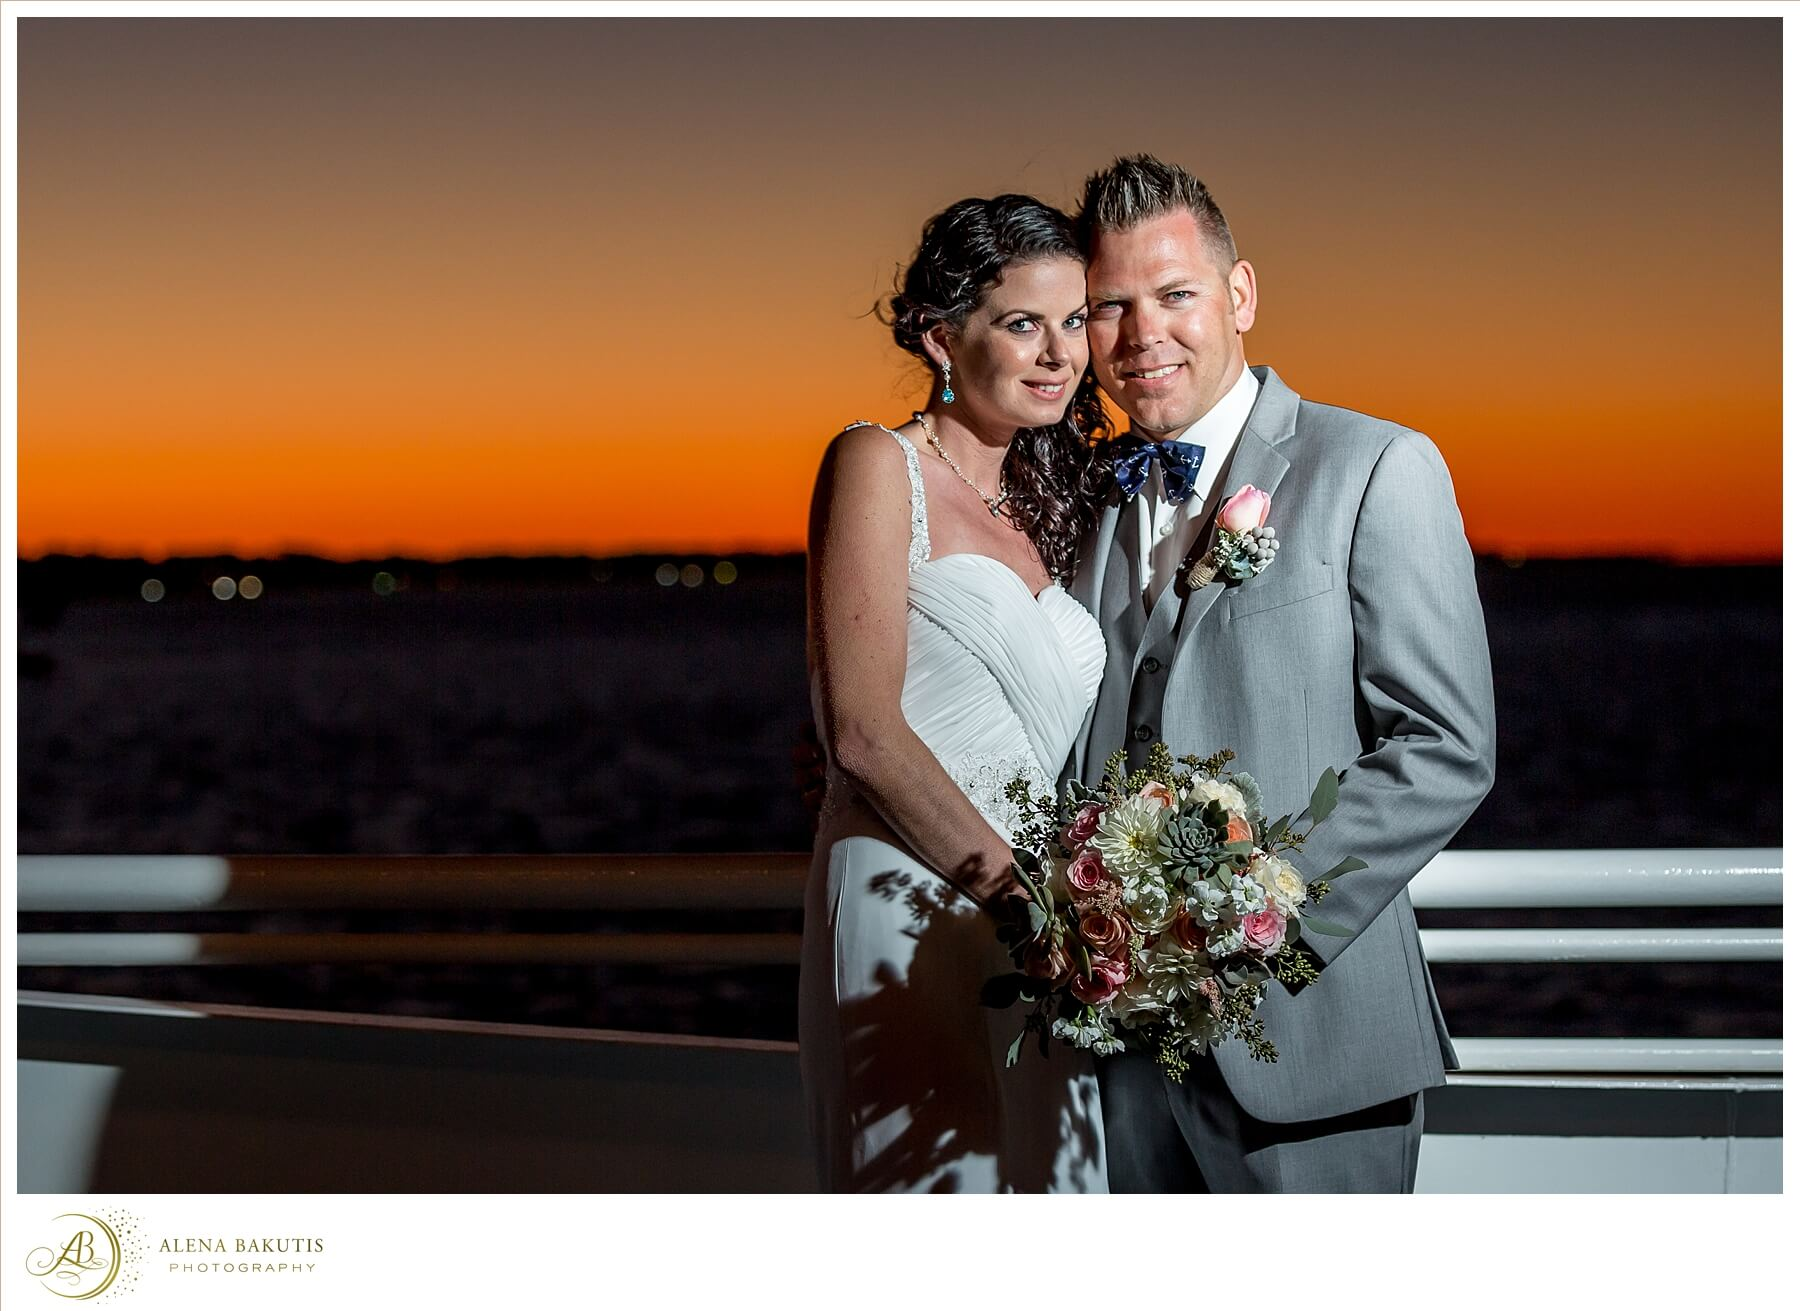 weddings destin fl Alena Bakutis Photography - Amber Brandon-554_WEB